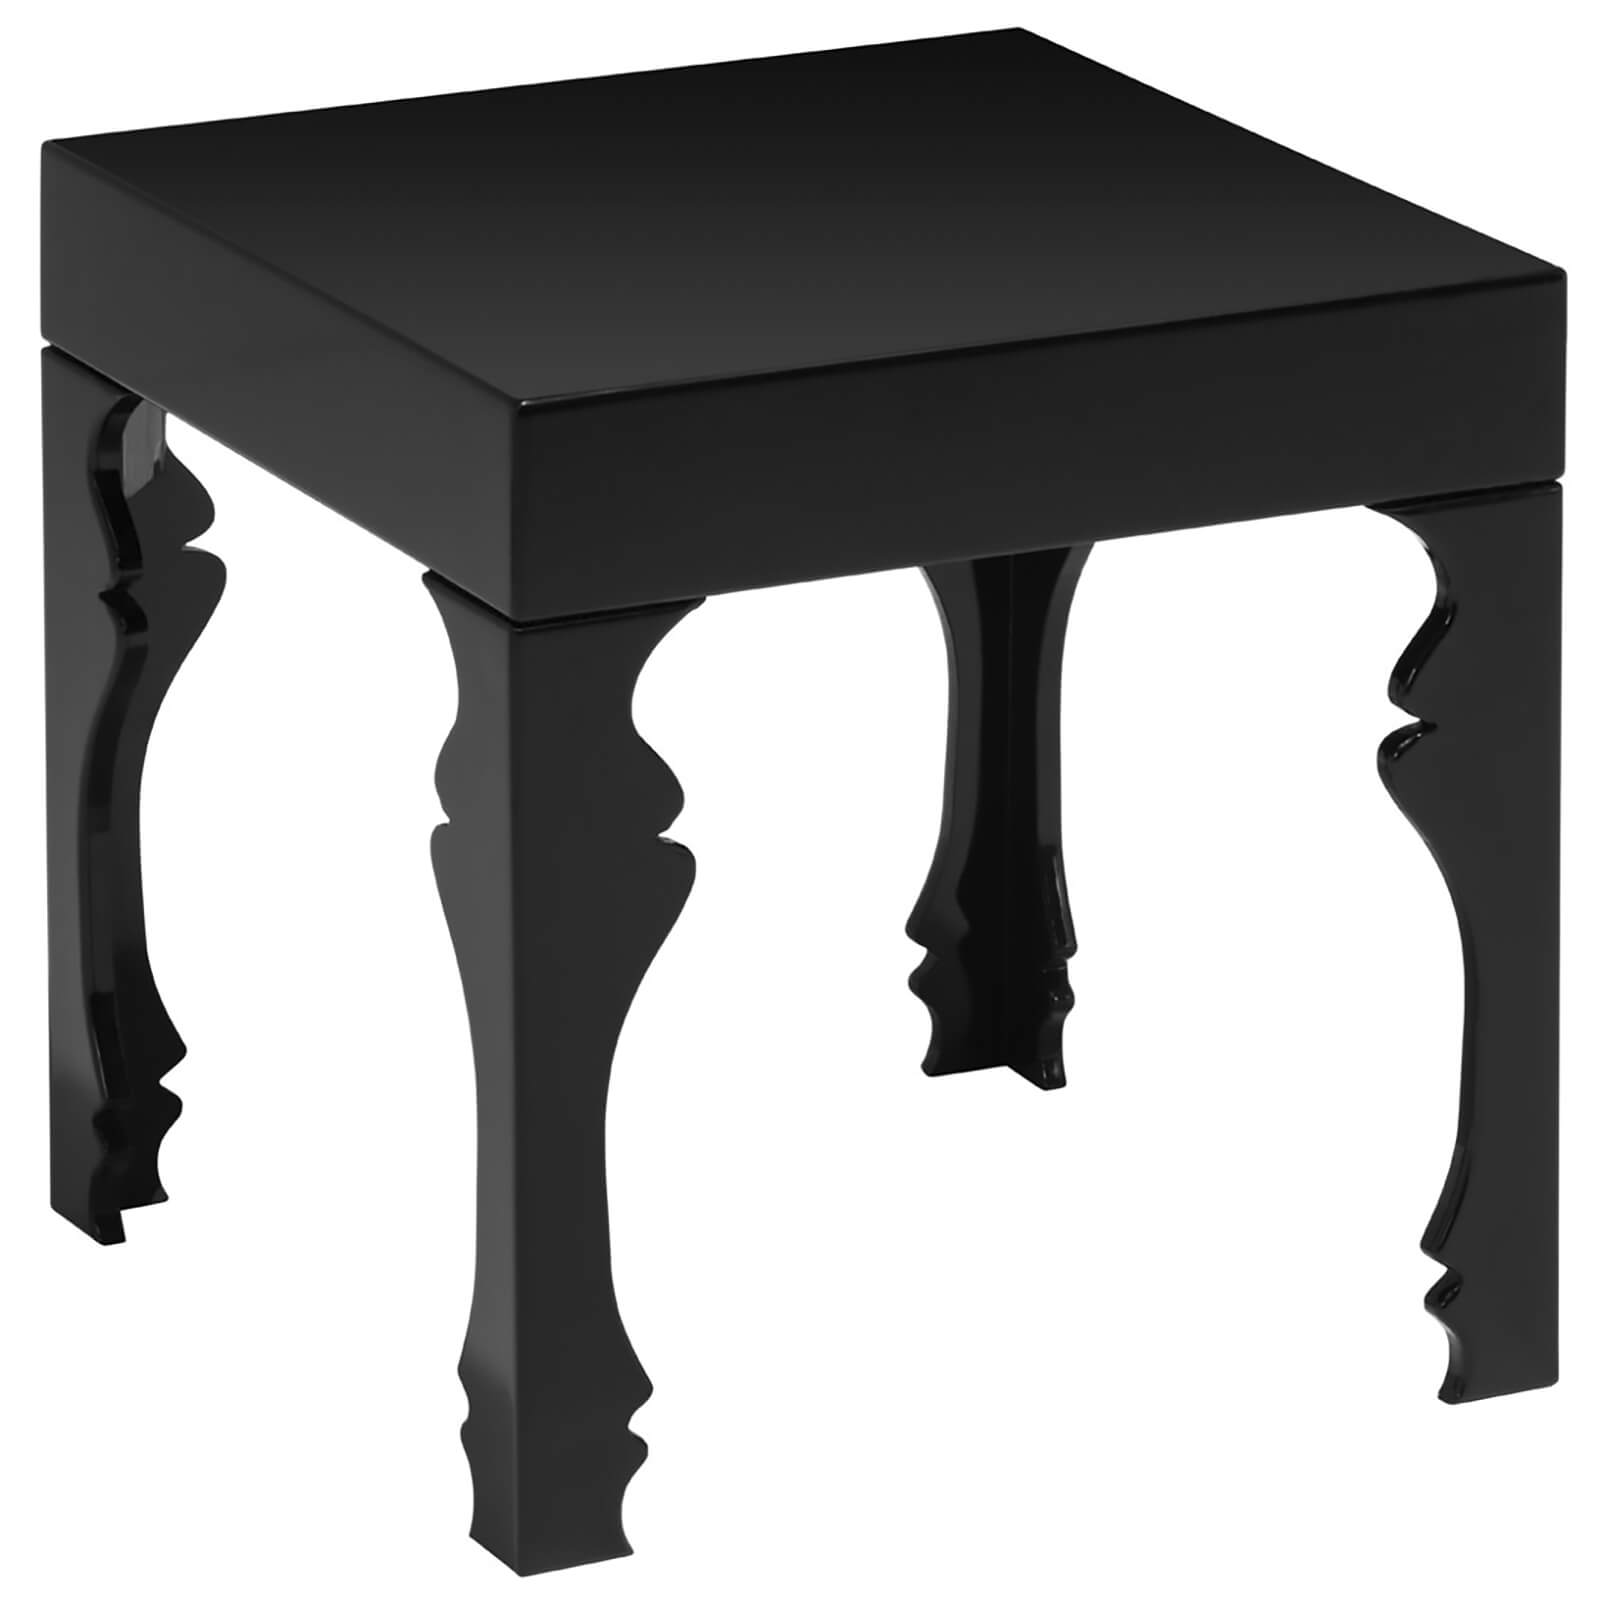 Fifty Five South Luis Side Table - Black High Gloss